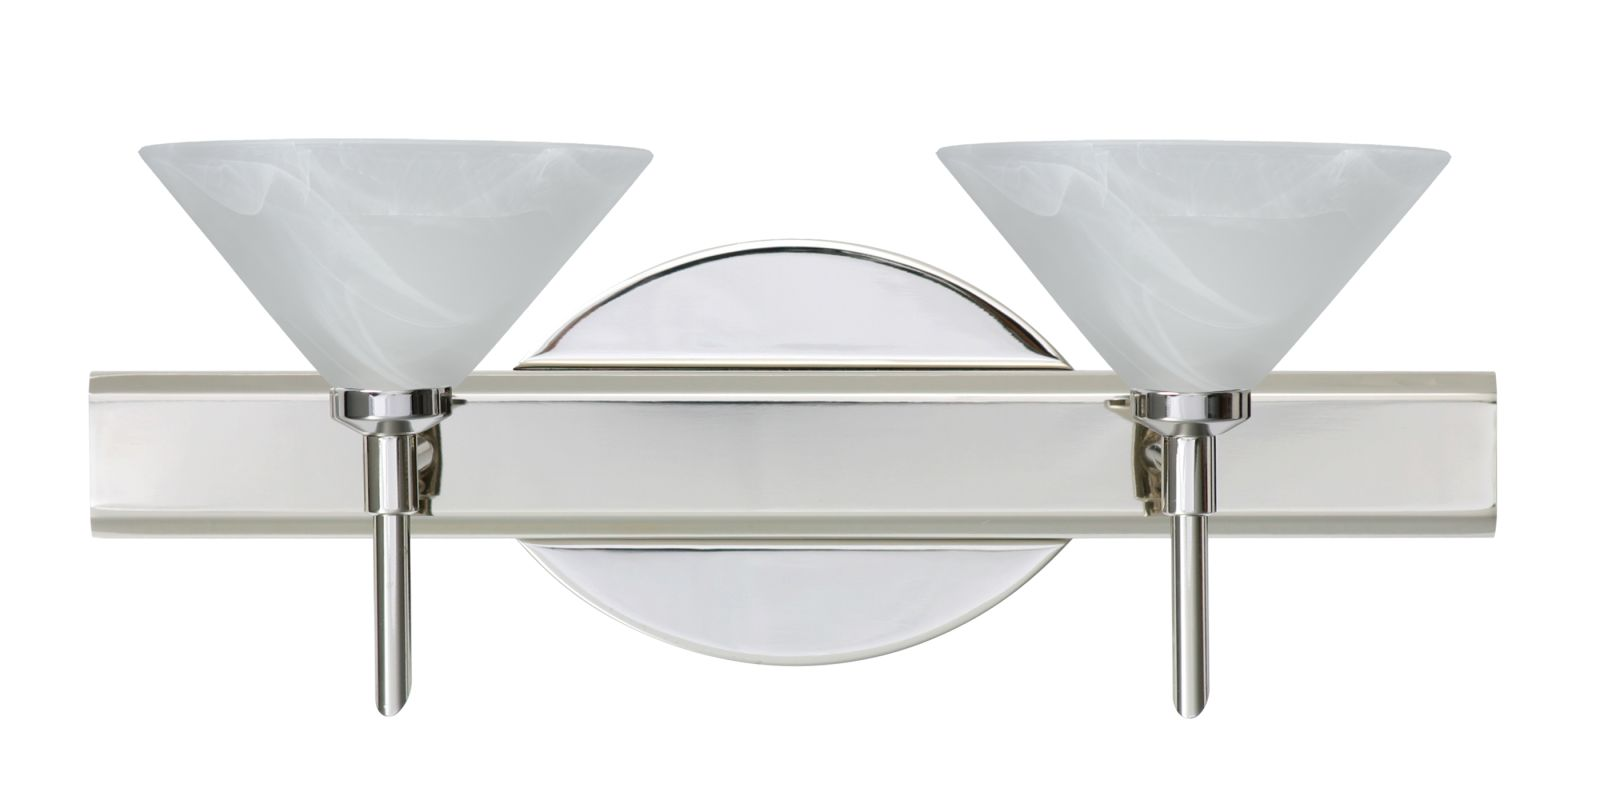 Besa Lighting 2SW-117652 Kona 2 Light Reversible Halogen Bathroom